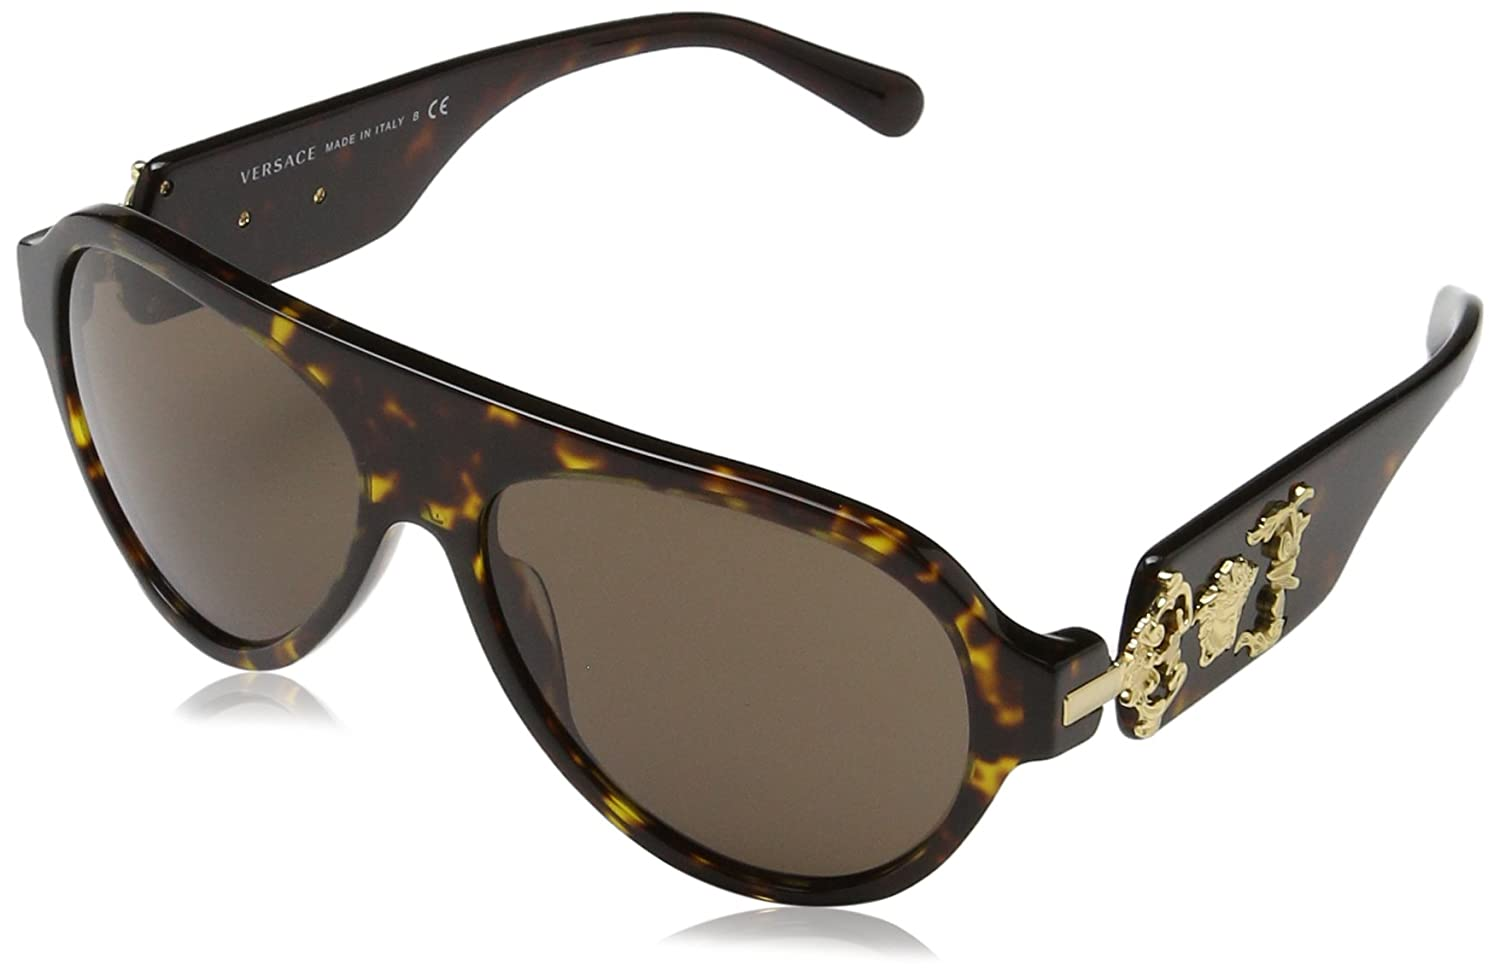 07ef8dc74acf Amazon.com  Versace Men s VE4323 Havana Brown Sunglasses  Clothing